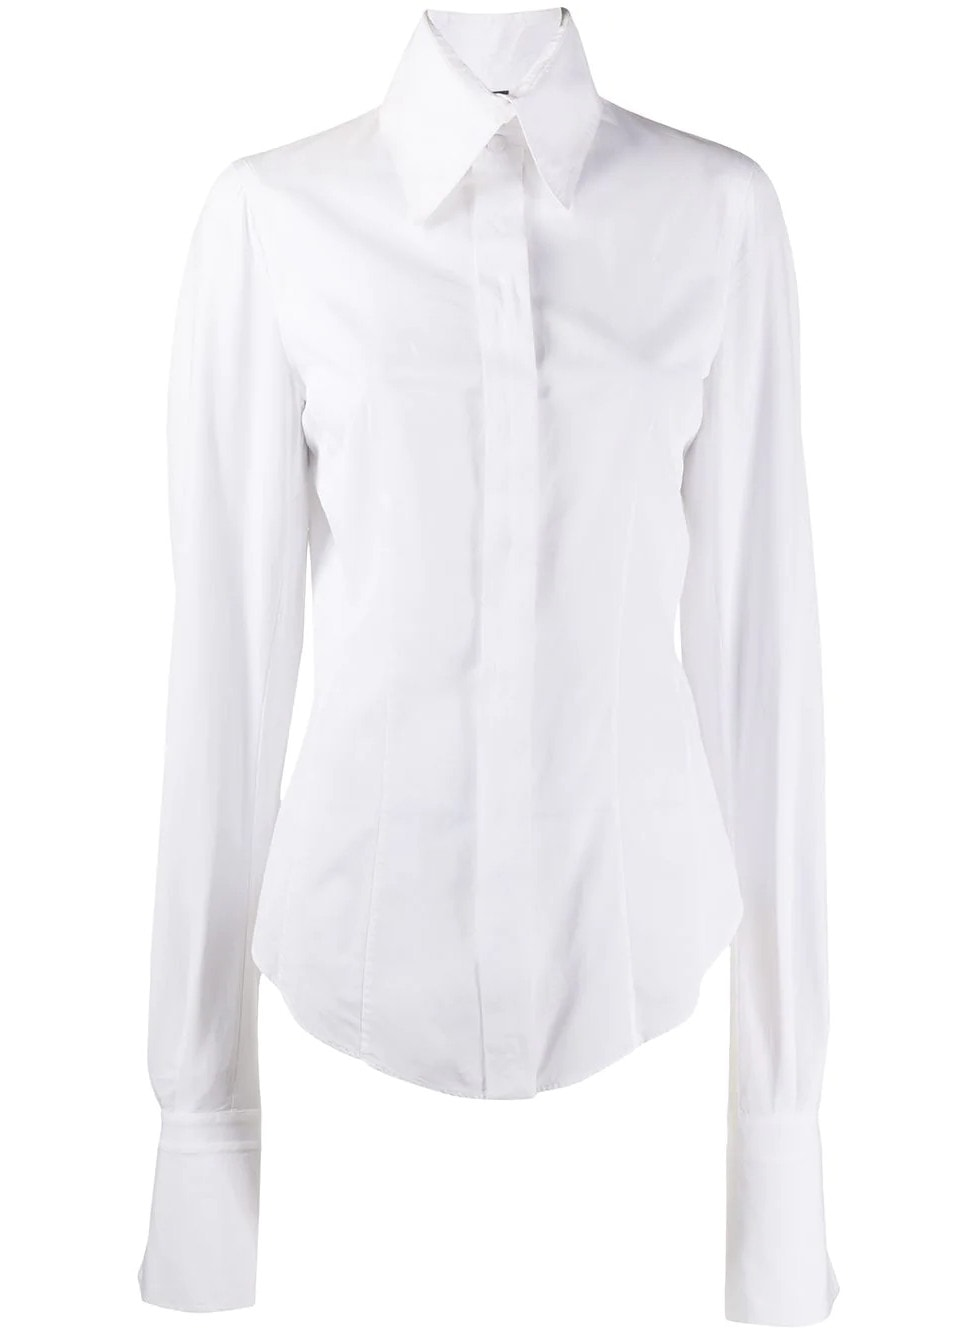 Gianfranco Ferré Pre-Owned 1990s Concealed Fastening Shirt - Farfetch